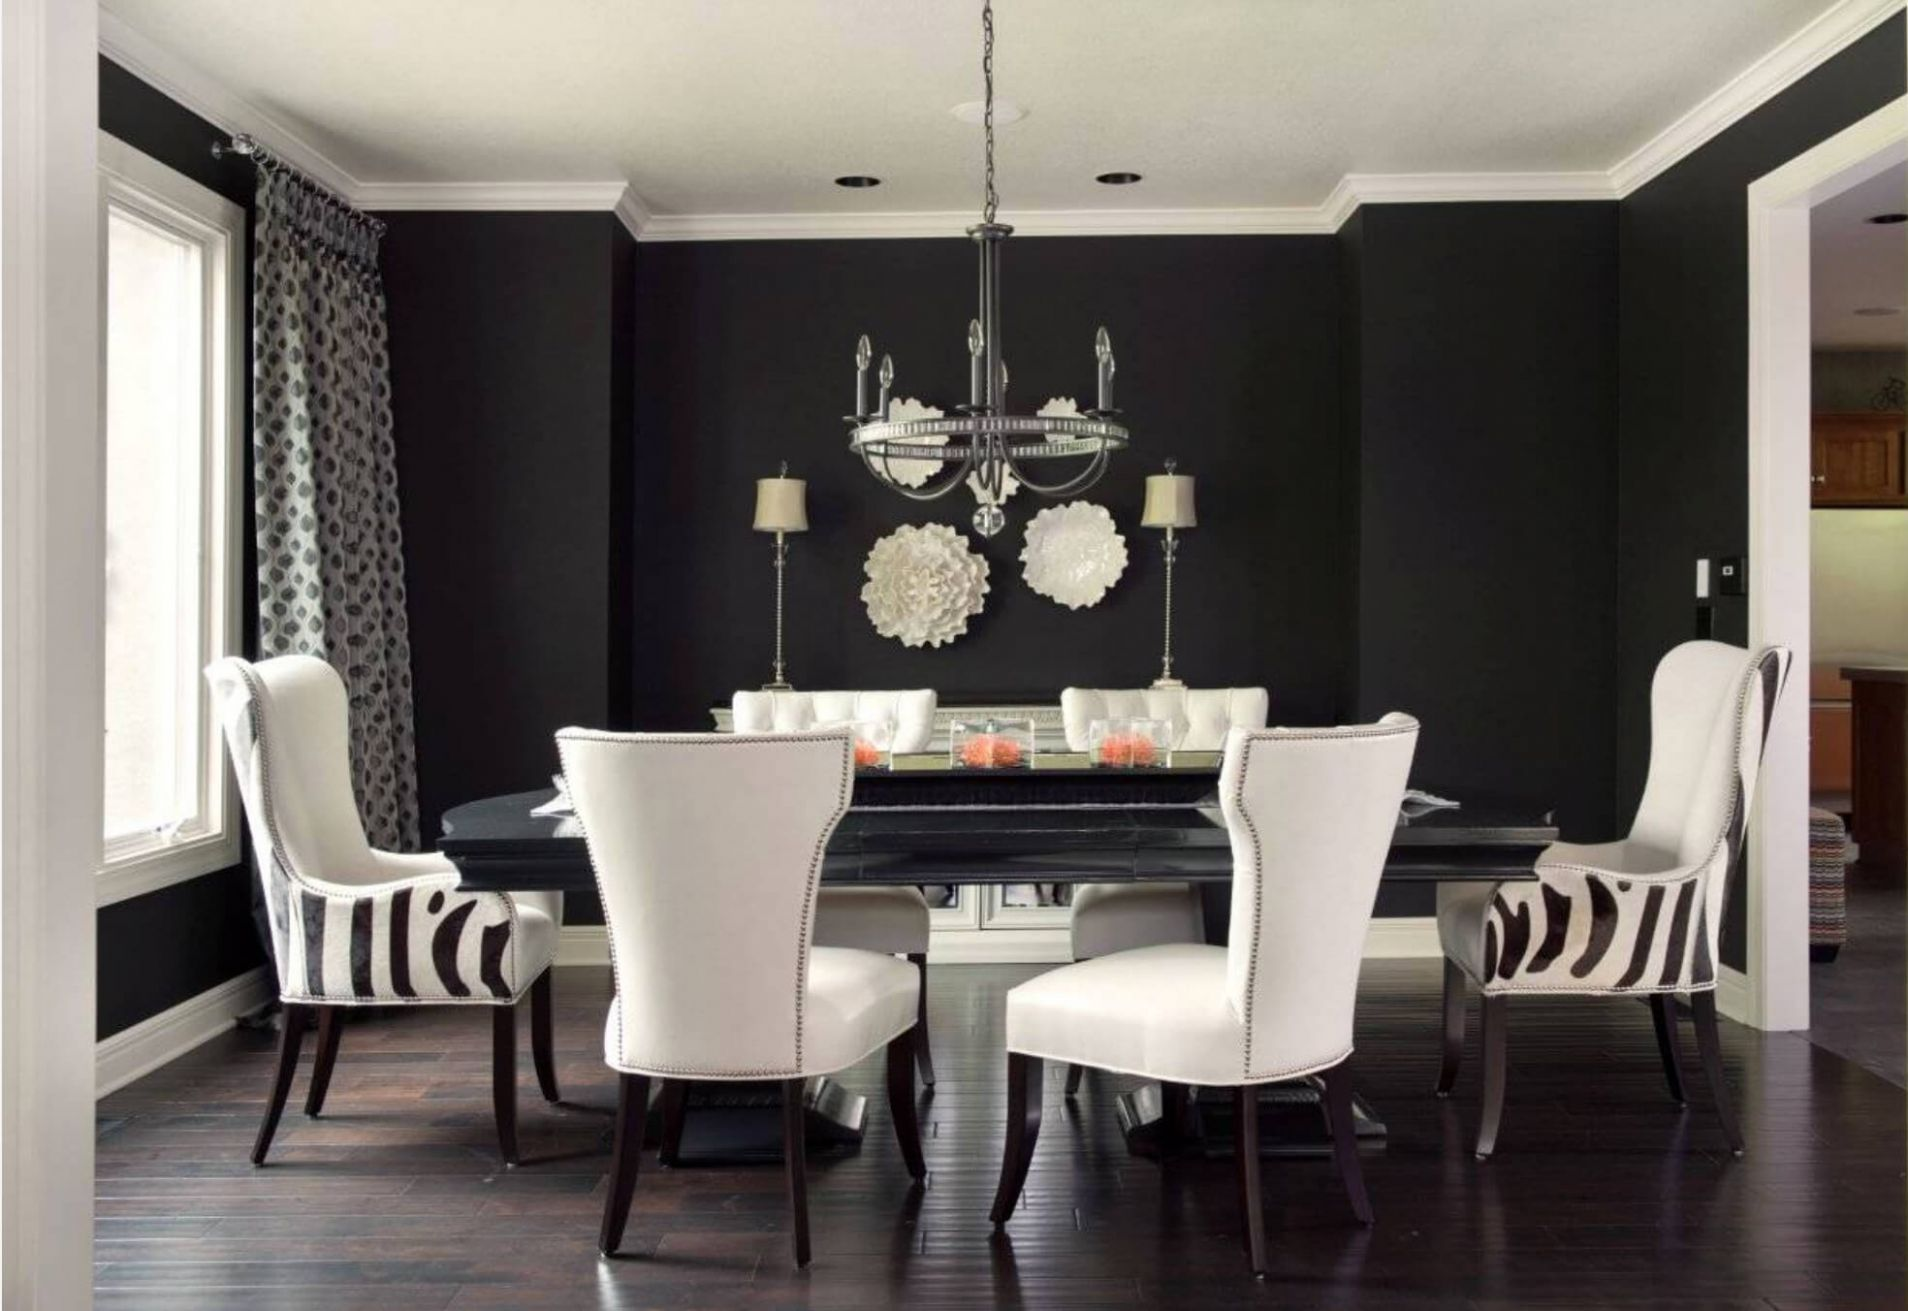 9 Creative Ideas for Dining Room Walls | Freshome.com